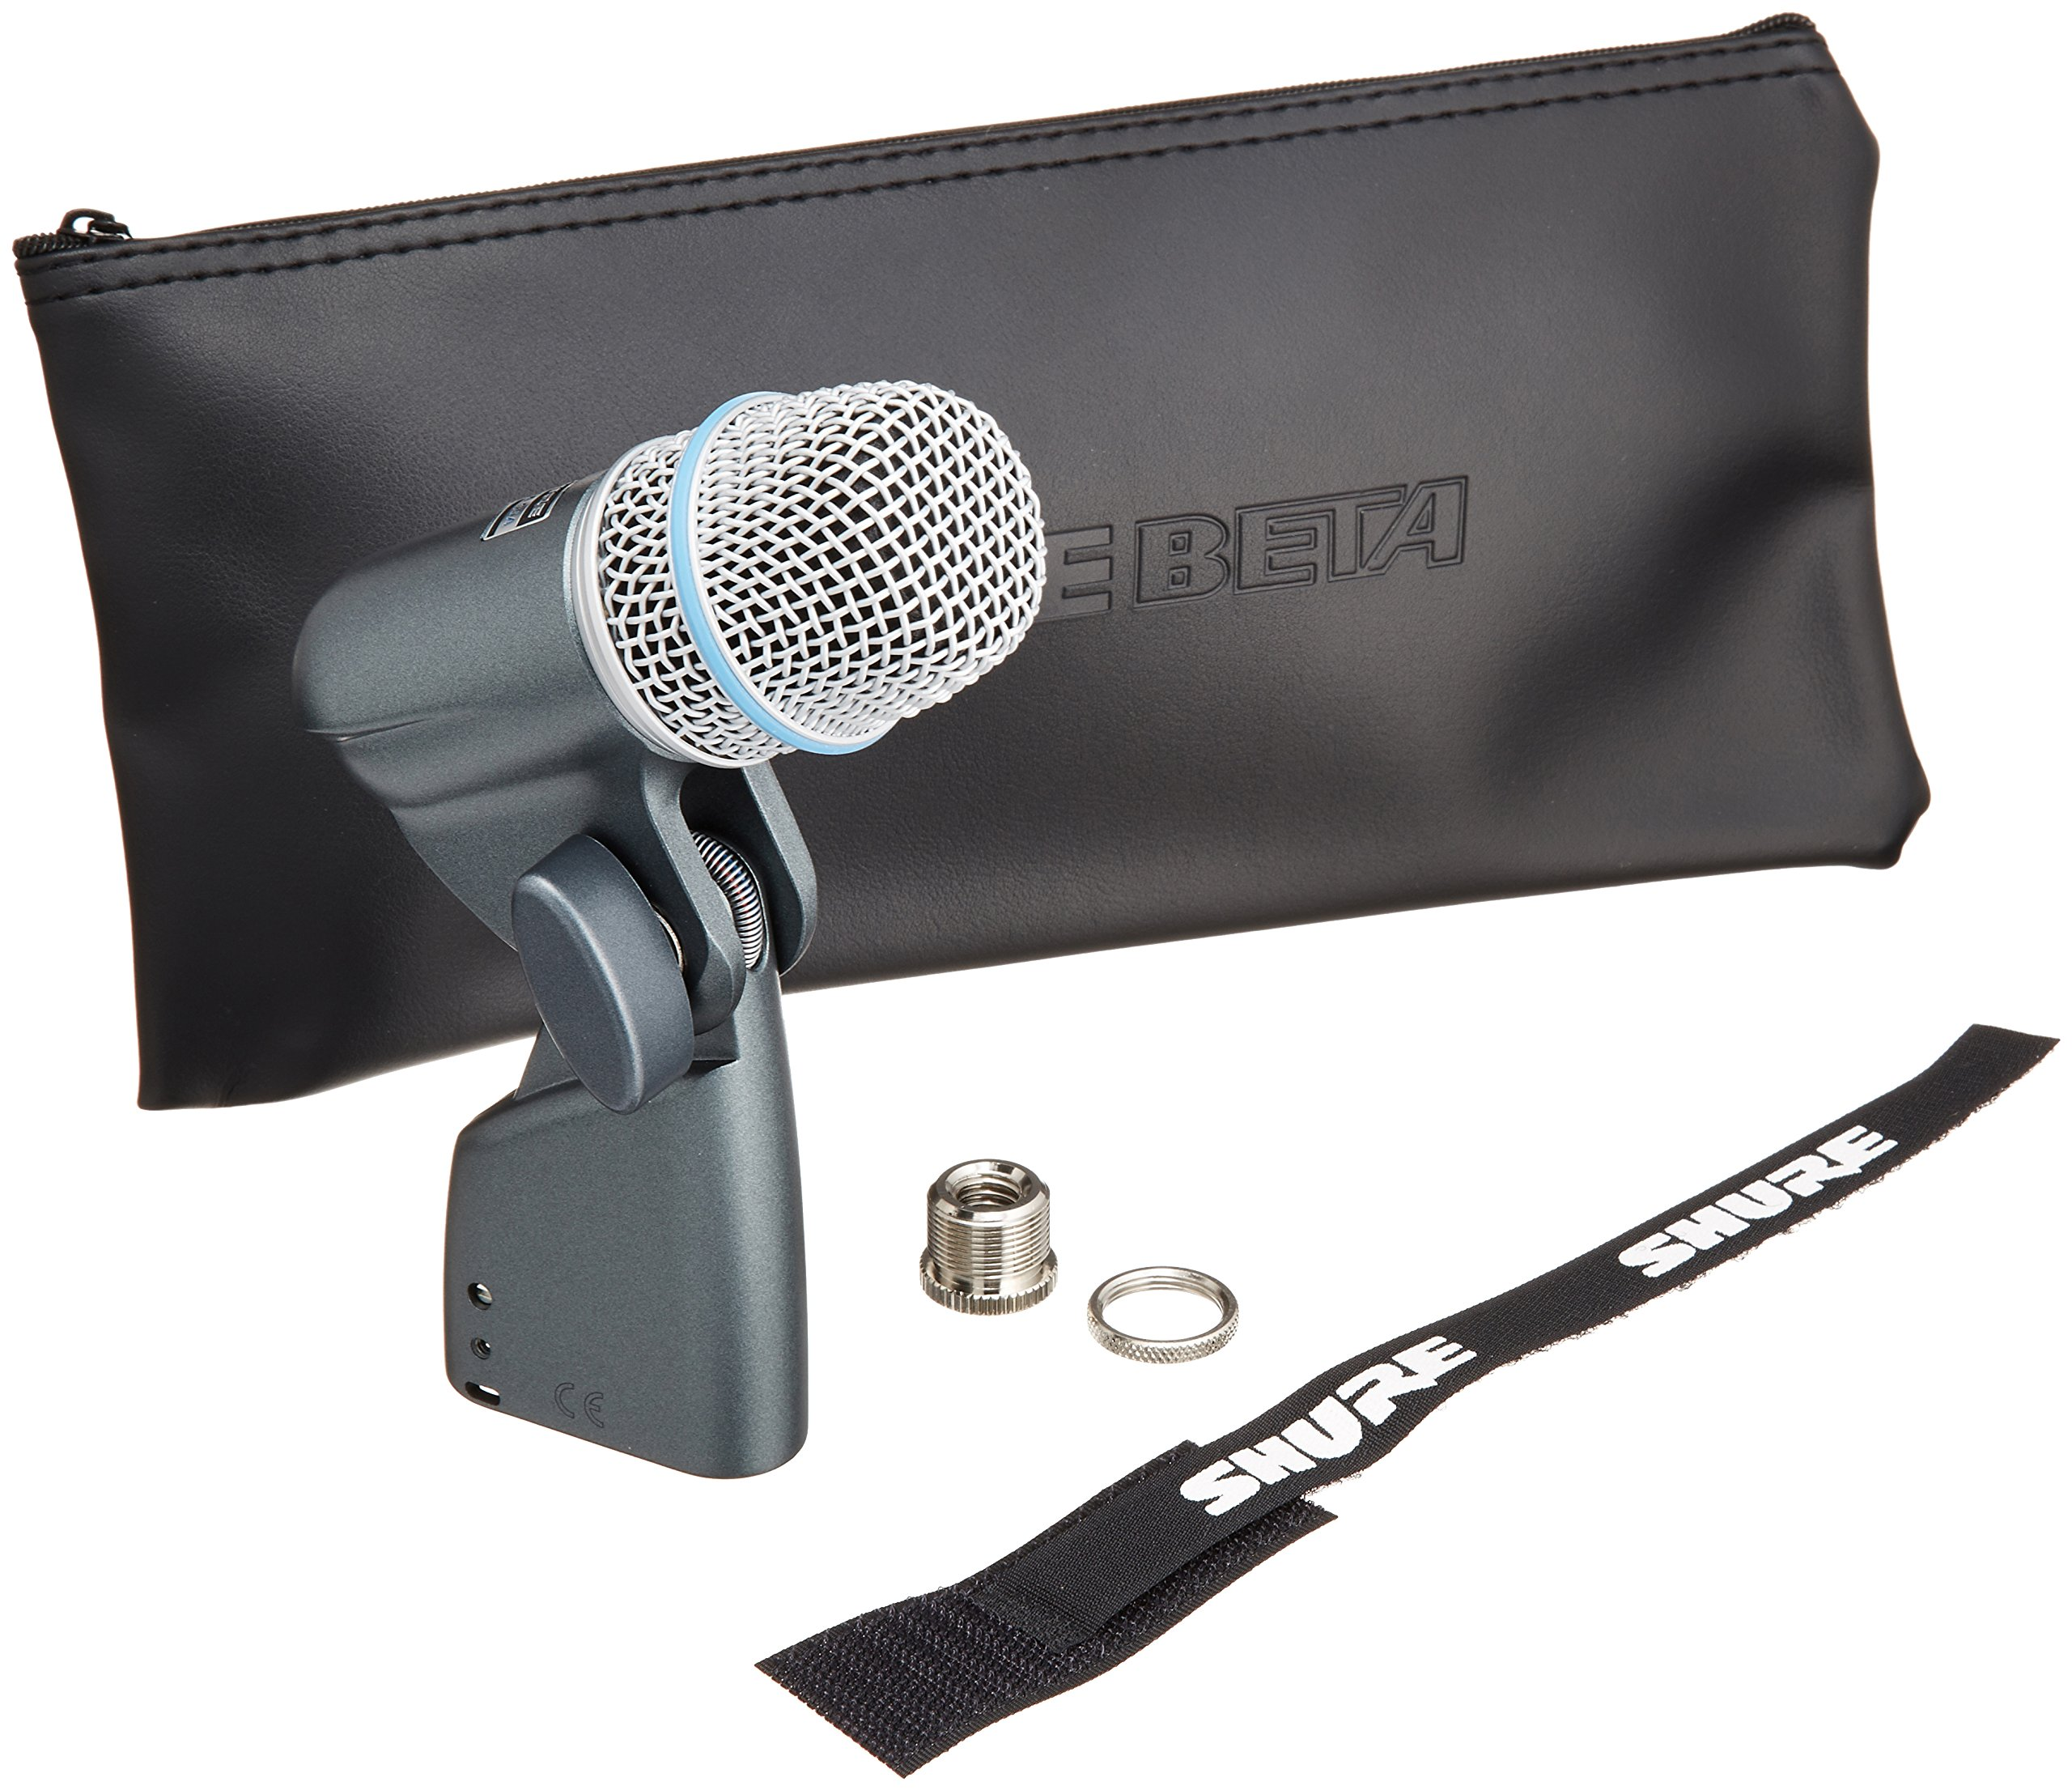 Shure BETA 56A Supercardioid Swivel-Mount Dynamic Microphone with High Output Neodymium Element for Vocal/Instrument Applications by Shure